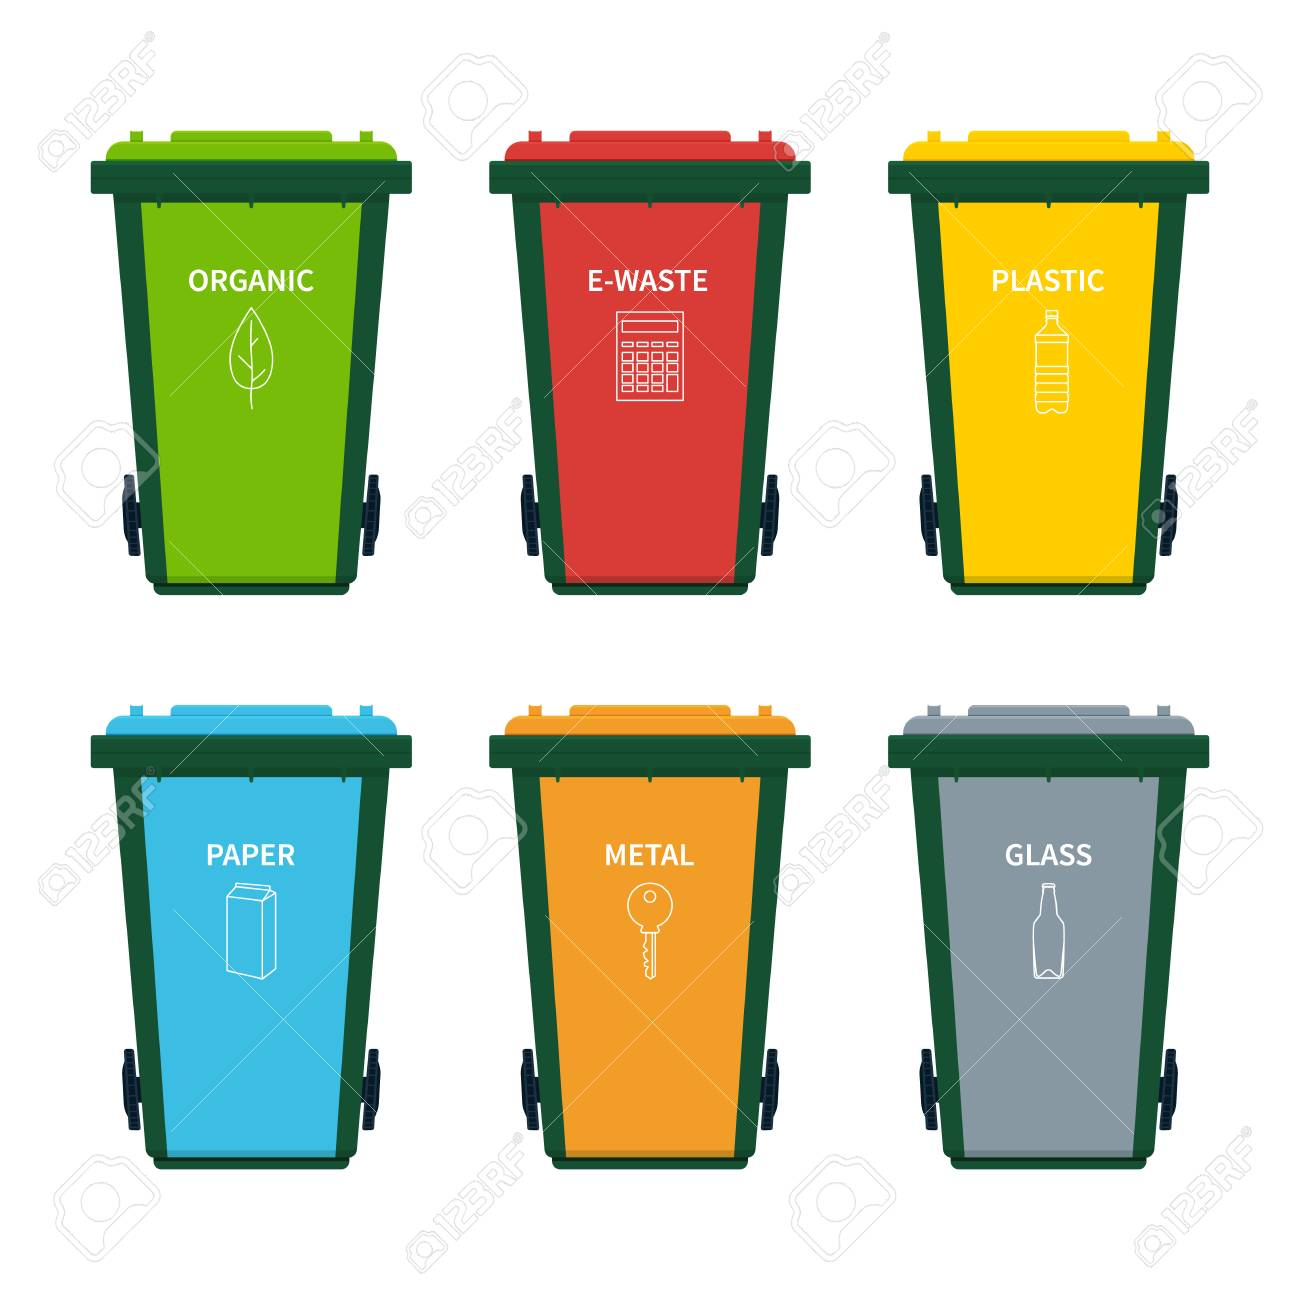 Garbage Bin Garbage Bin Set For Sorting Different Types Of Recycling Waste